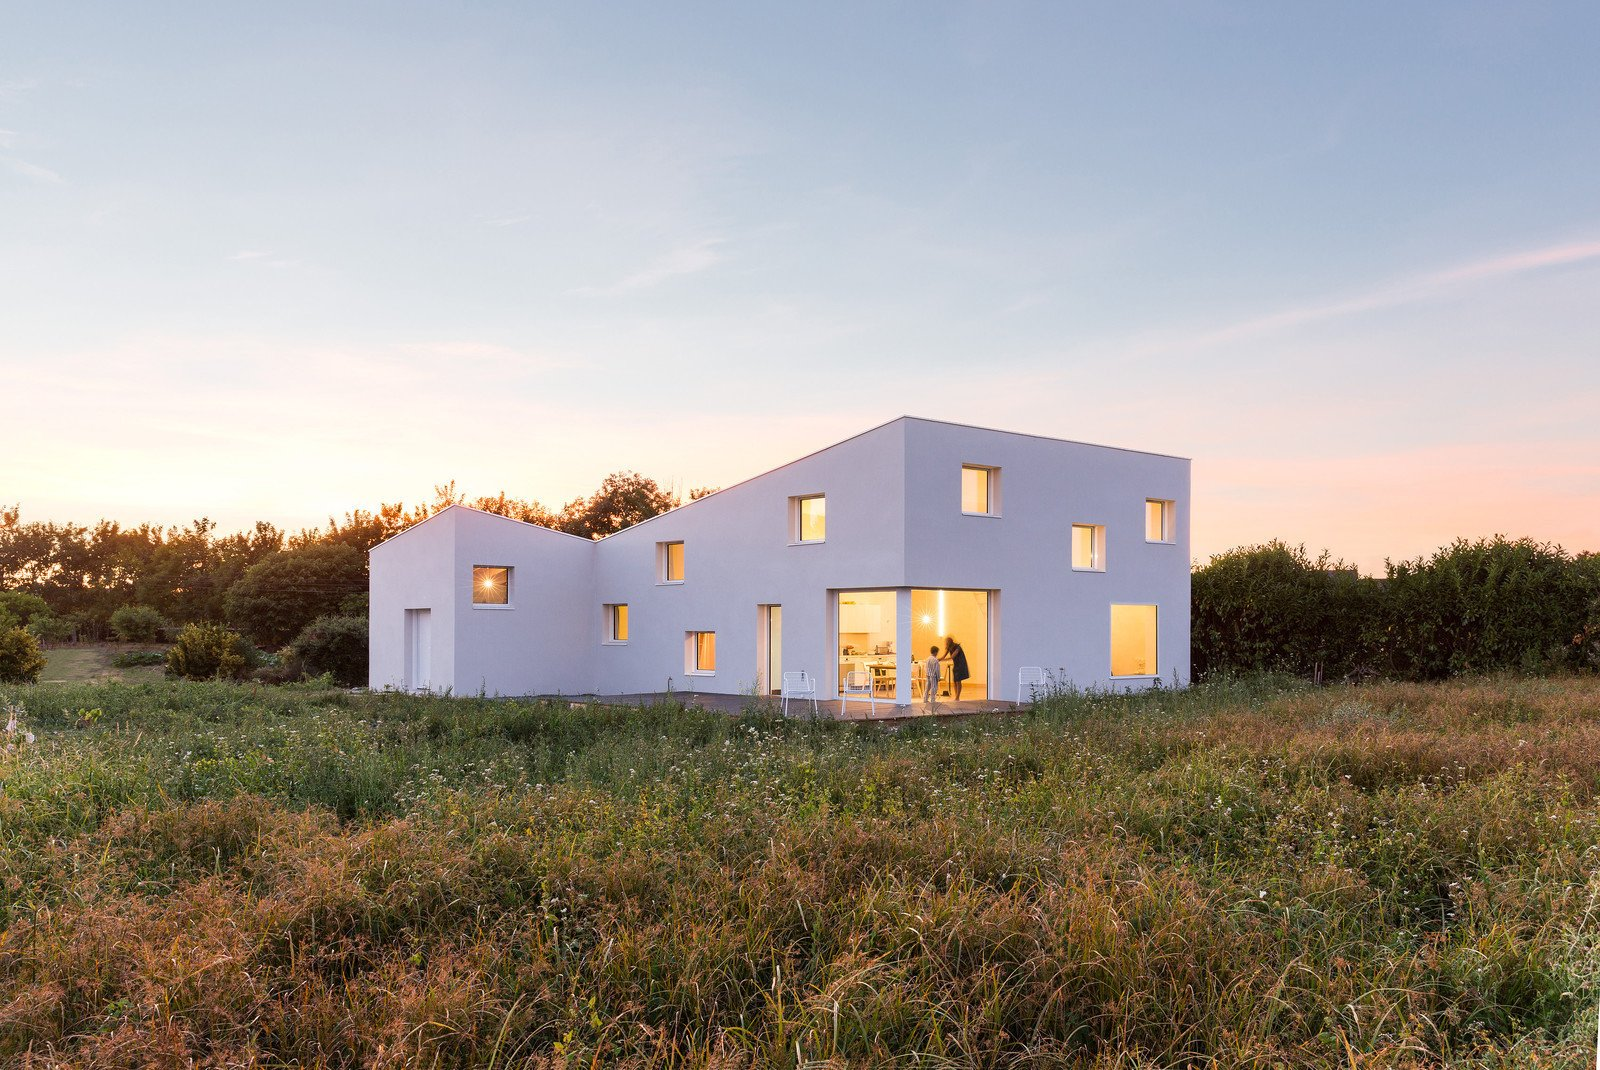 Photo 2 of 11 in 10 Bright White Cubist Homes Across the Globe